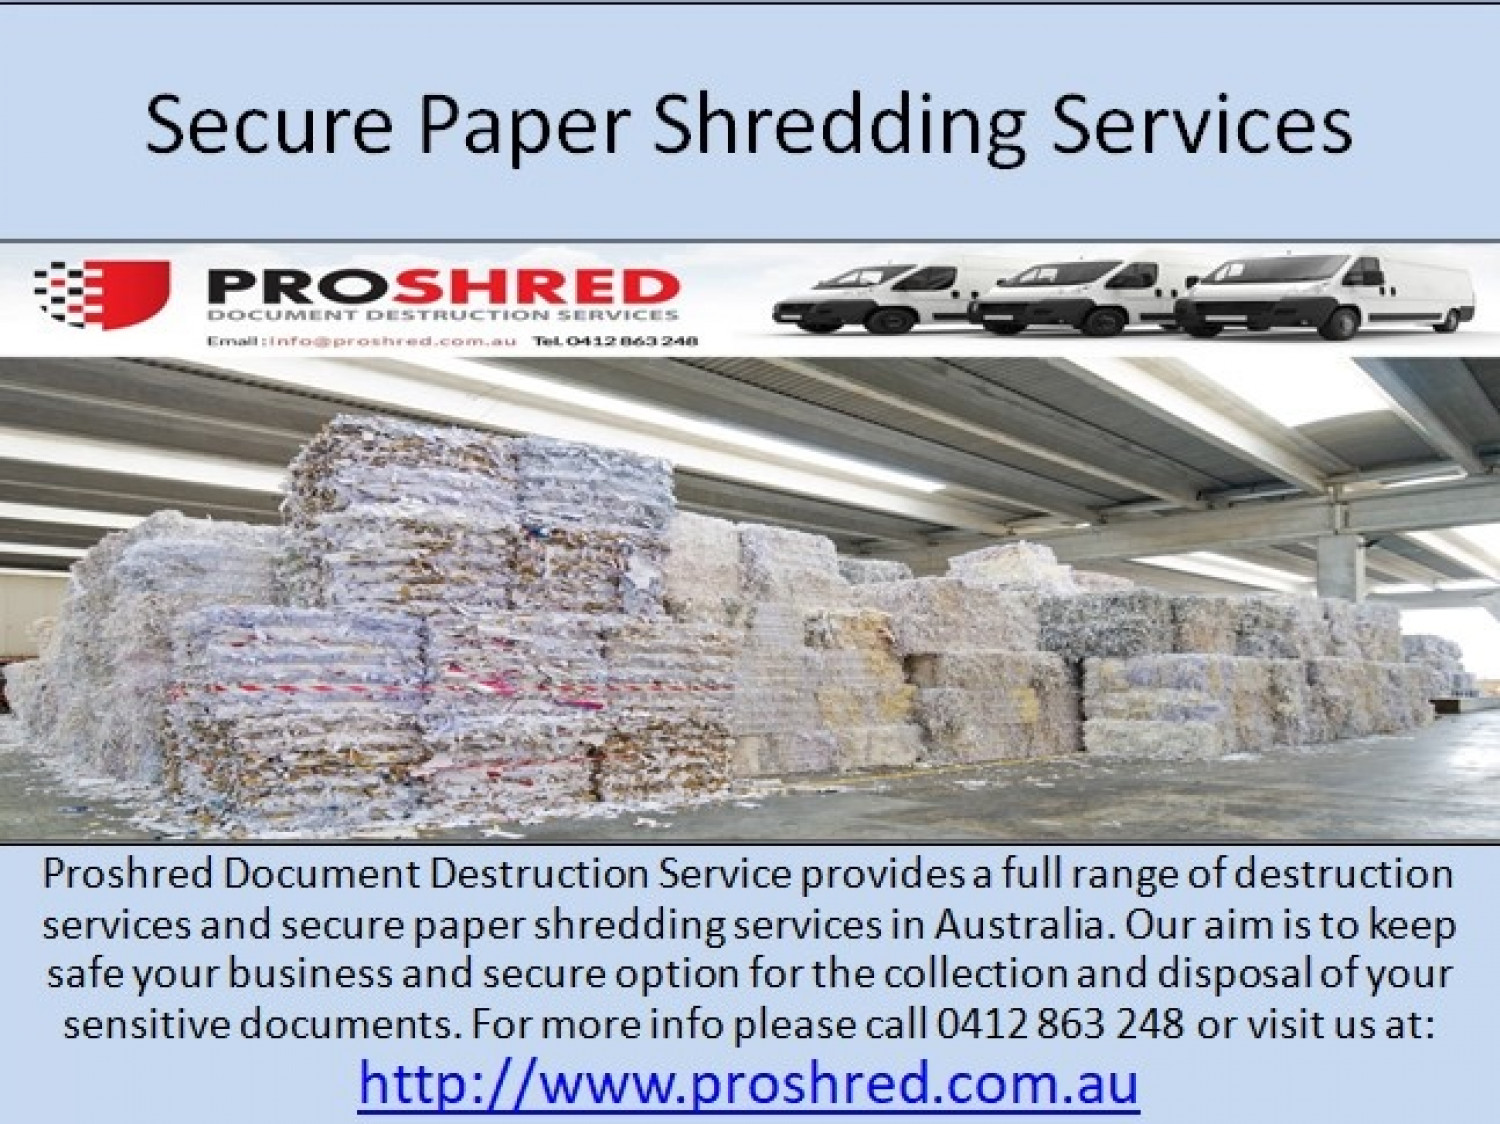 Secure Paper Shredding Services Infographic